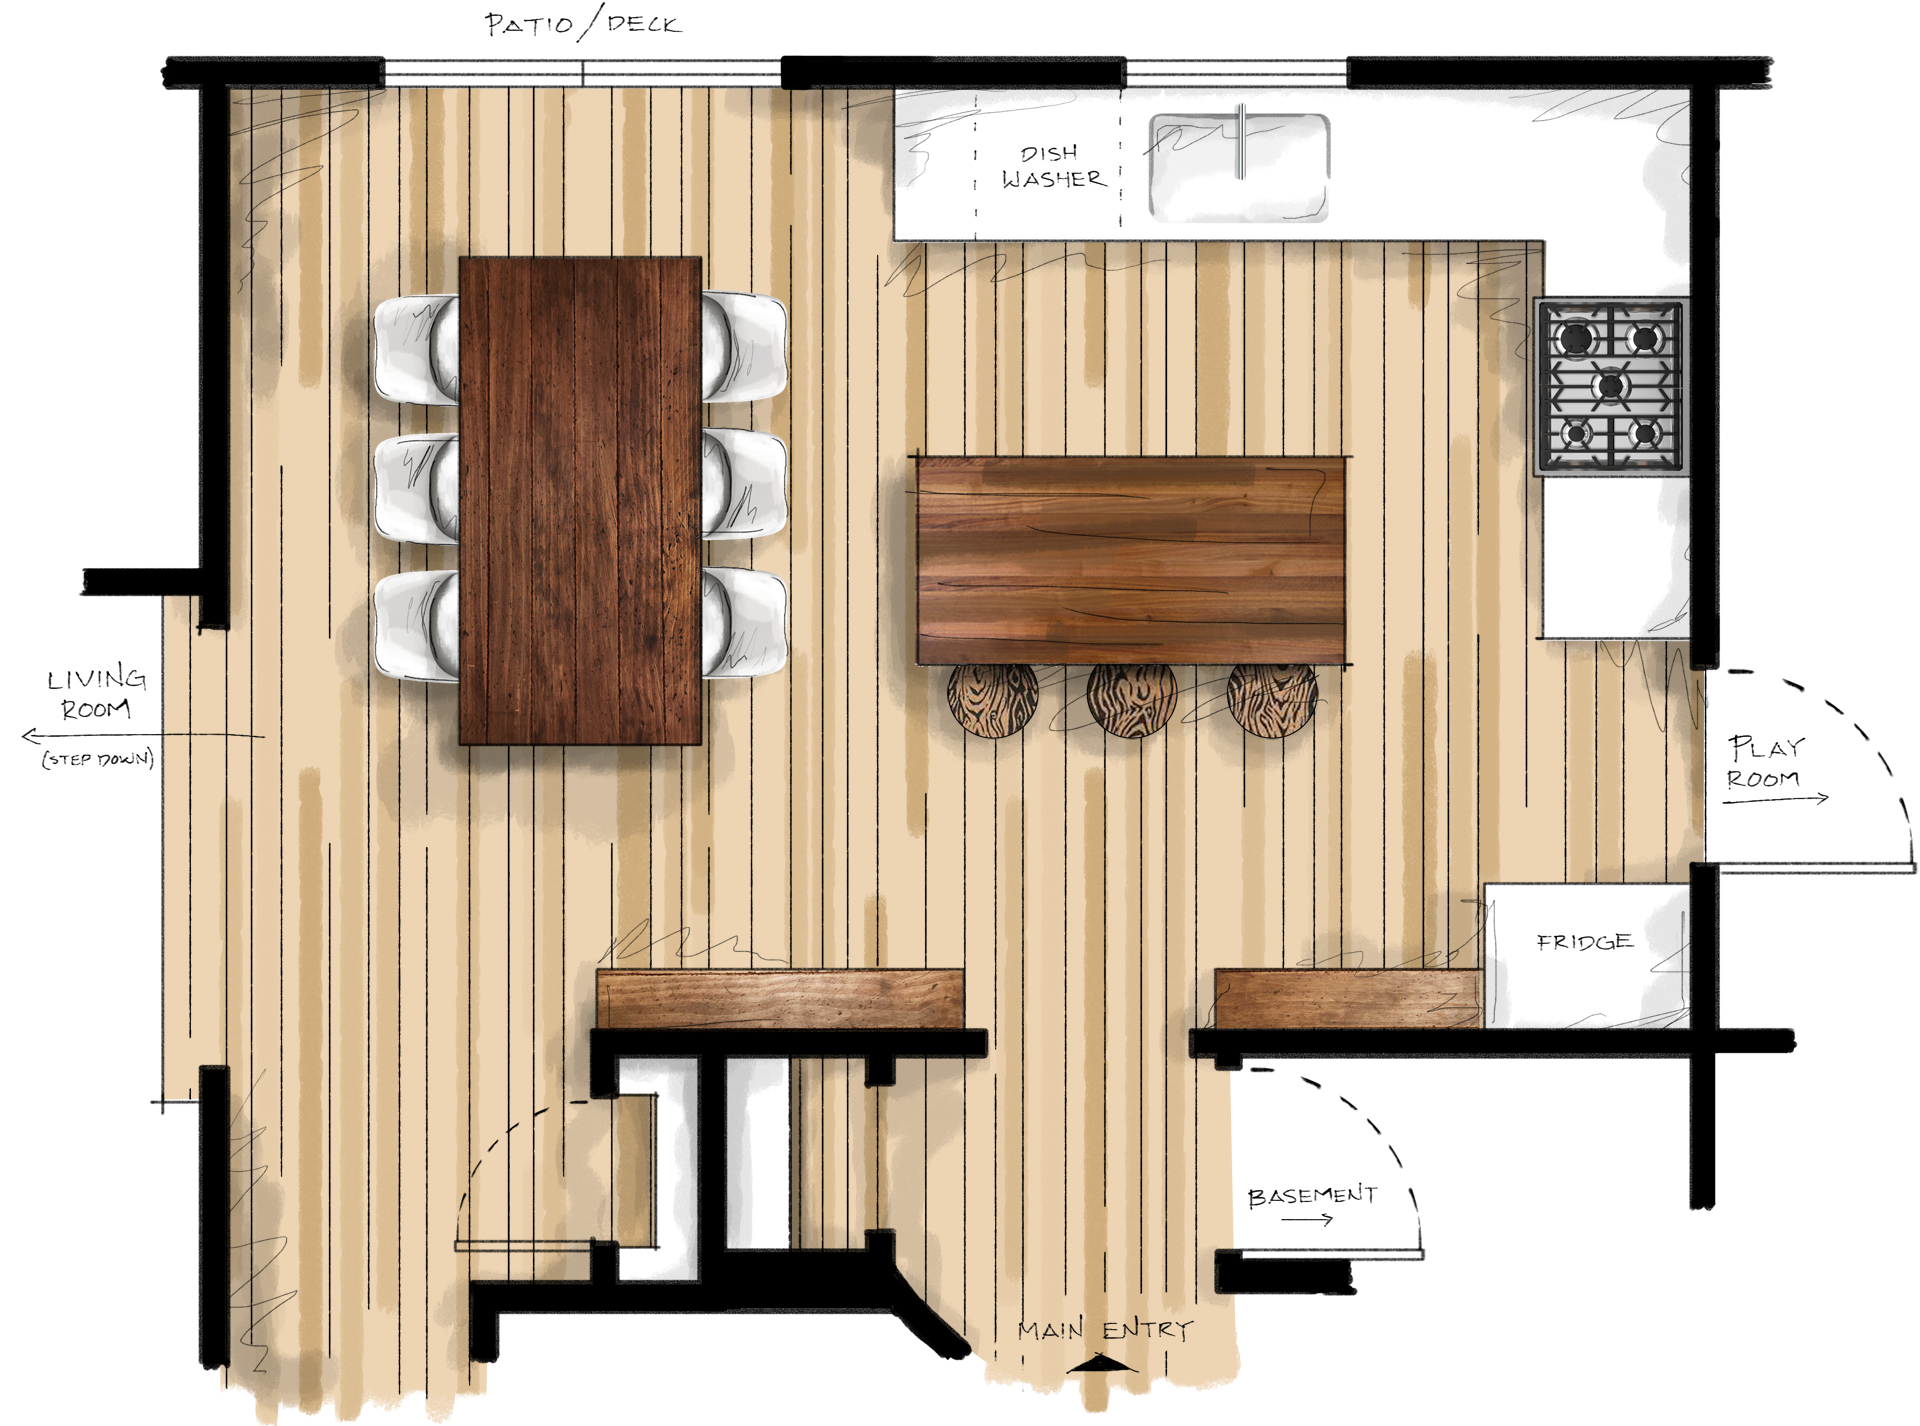 New Kitchen Plans - Making Nice in the Midwest